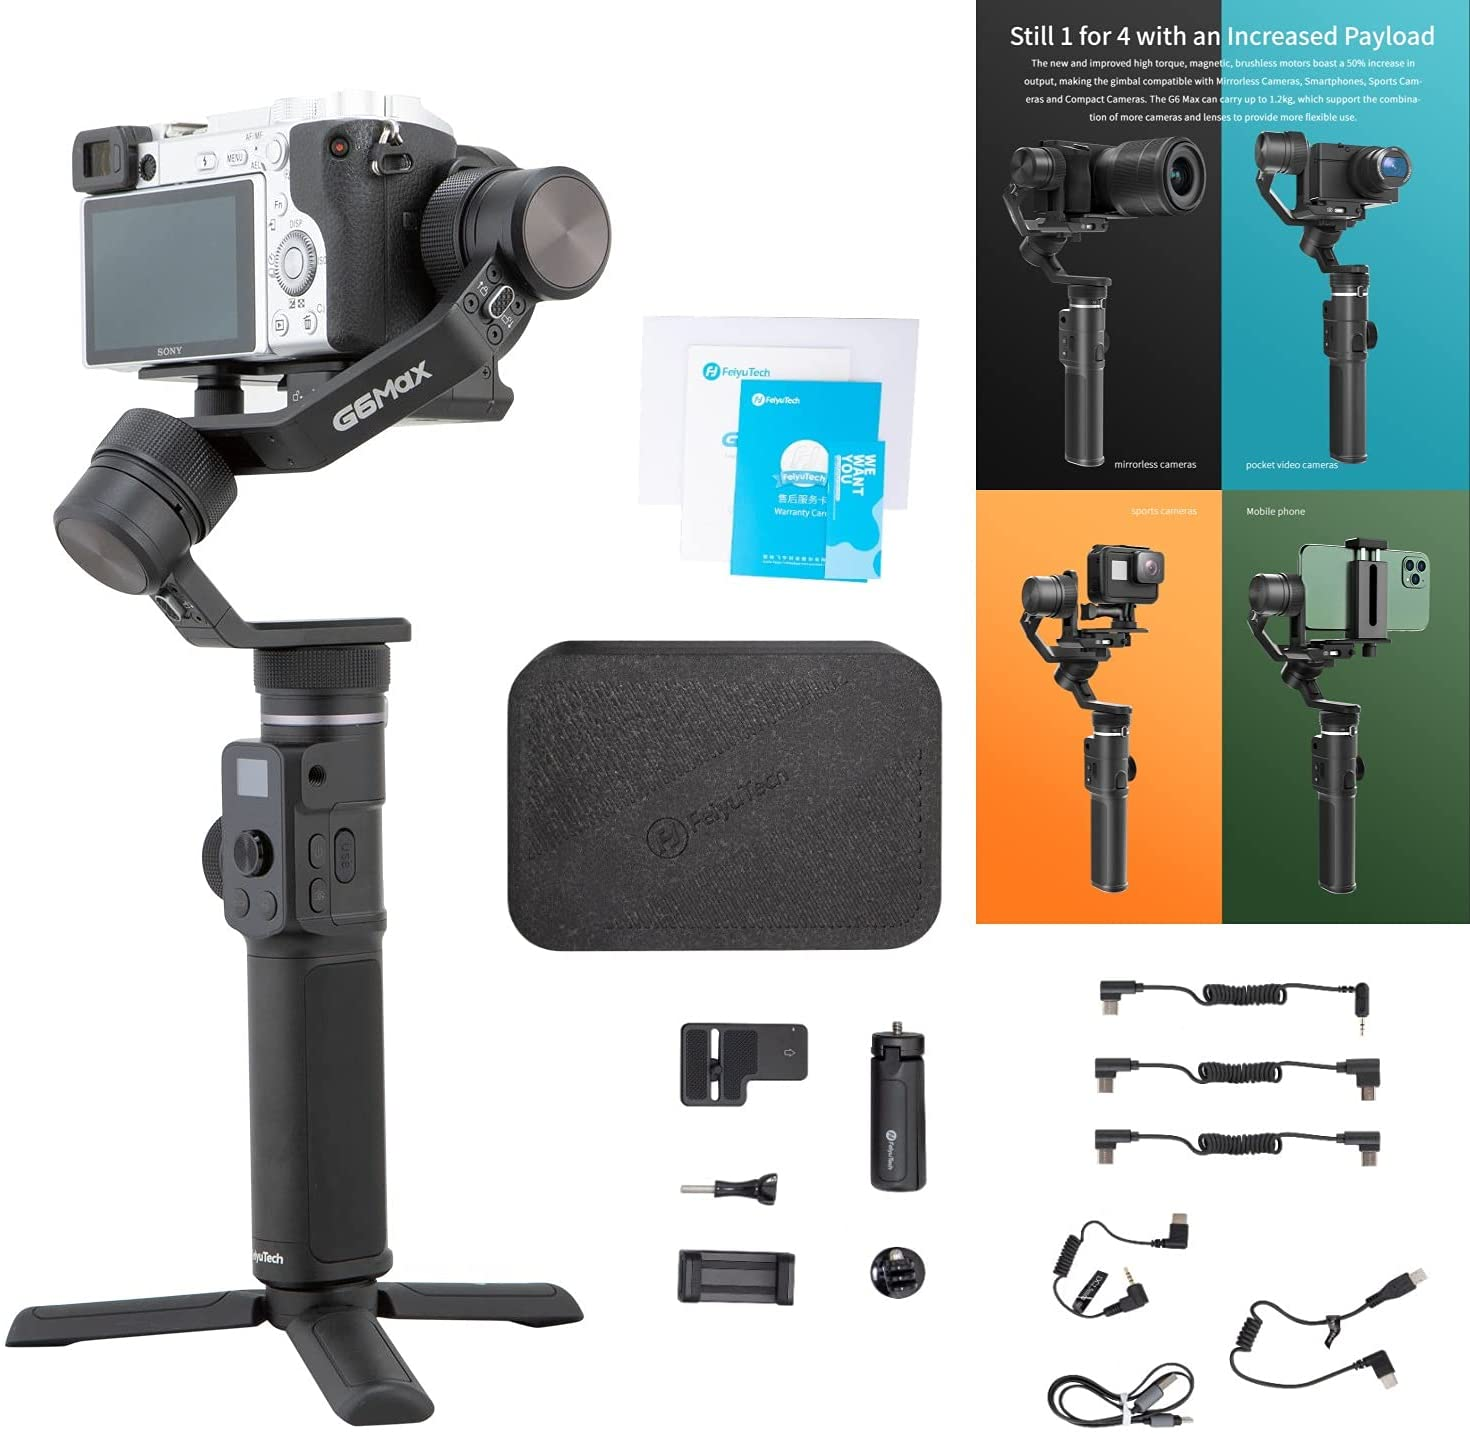 Get FeiyuTech G6 Max 3-Axis Stabilizer Camera Gimbal for Mirrorless/Pocket/Action Camera/Smartphone iPhone 12 Pro Max, Payload 1.2kg